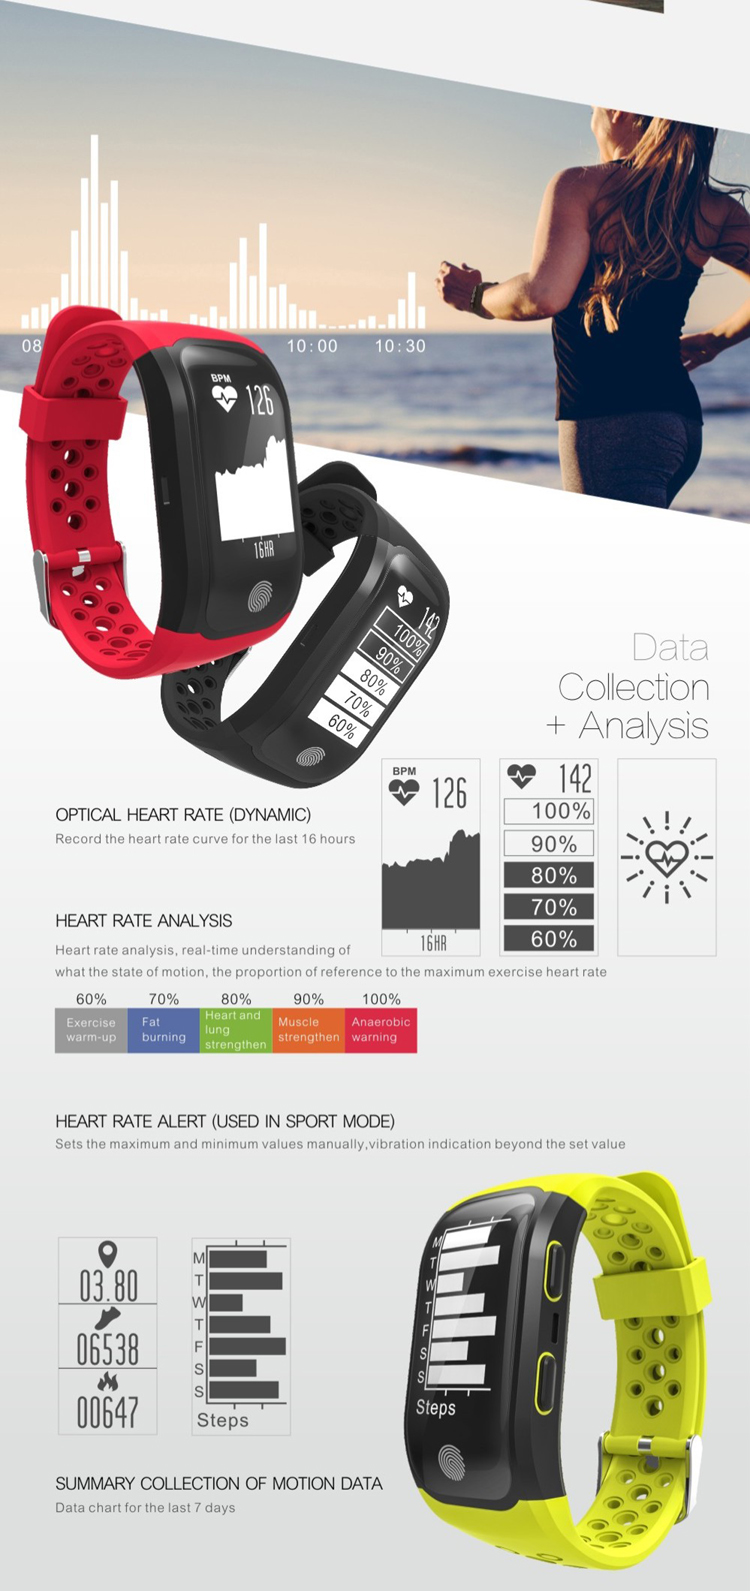 Feipuker Heart Rate Smart Wristband GPS Track Record Smart Band 2 Sleep Pedometer Bracelet Fitness Tracker Smart Watch Relogio 5